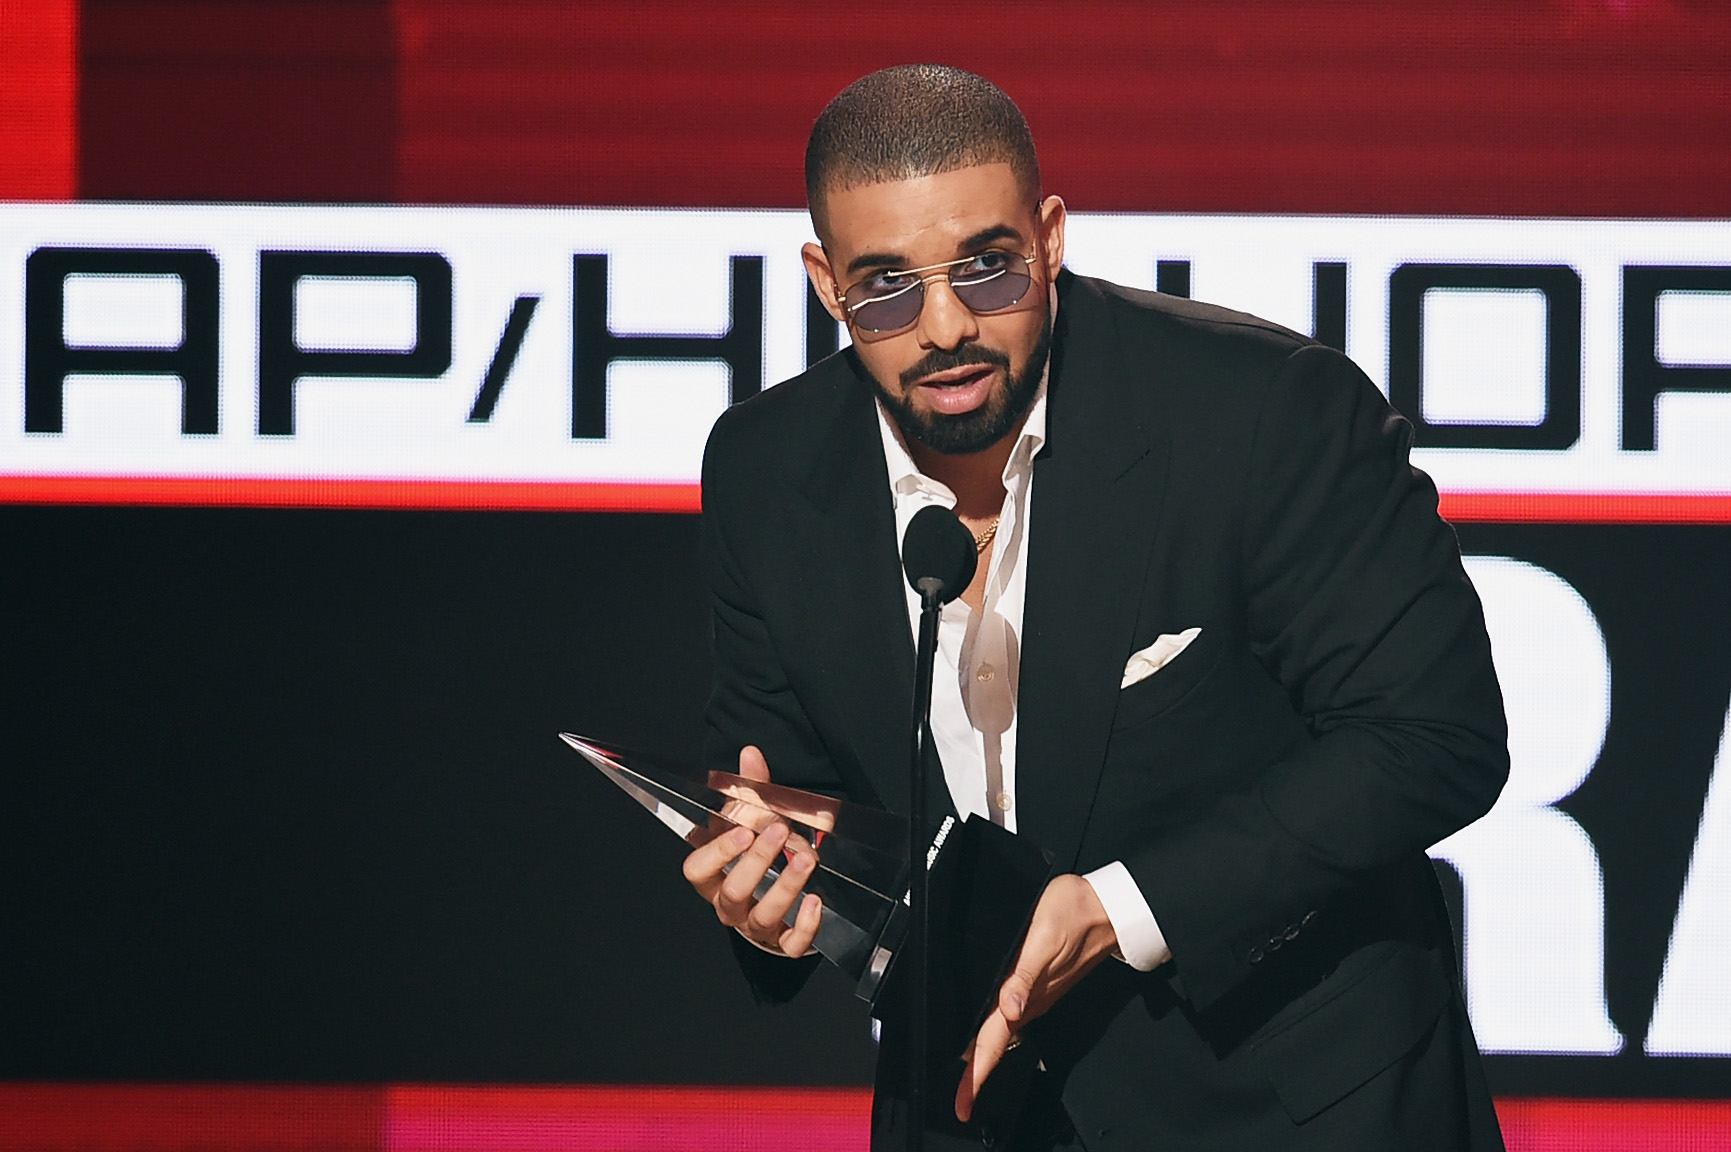 Drake accepts Favorite Rap/Hip-Hop Artist during the American Music Awards on November 20, 2016 in Los Angeles, California. (Photo by Kevin Winter/Getty Images)